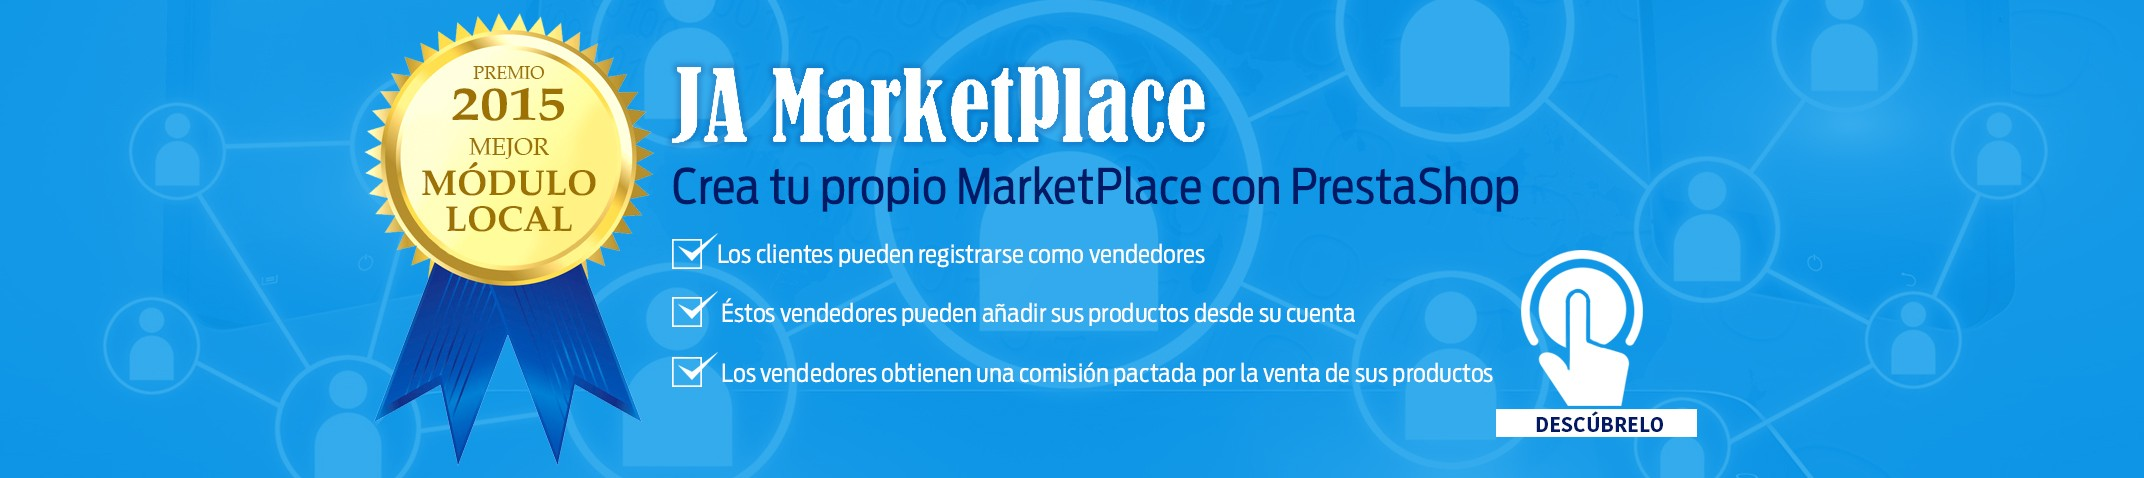 JA Marketplace - Create your own marketplace with PrestaShop